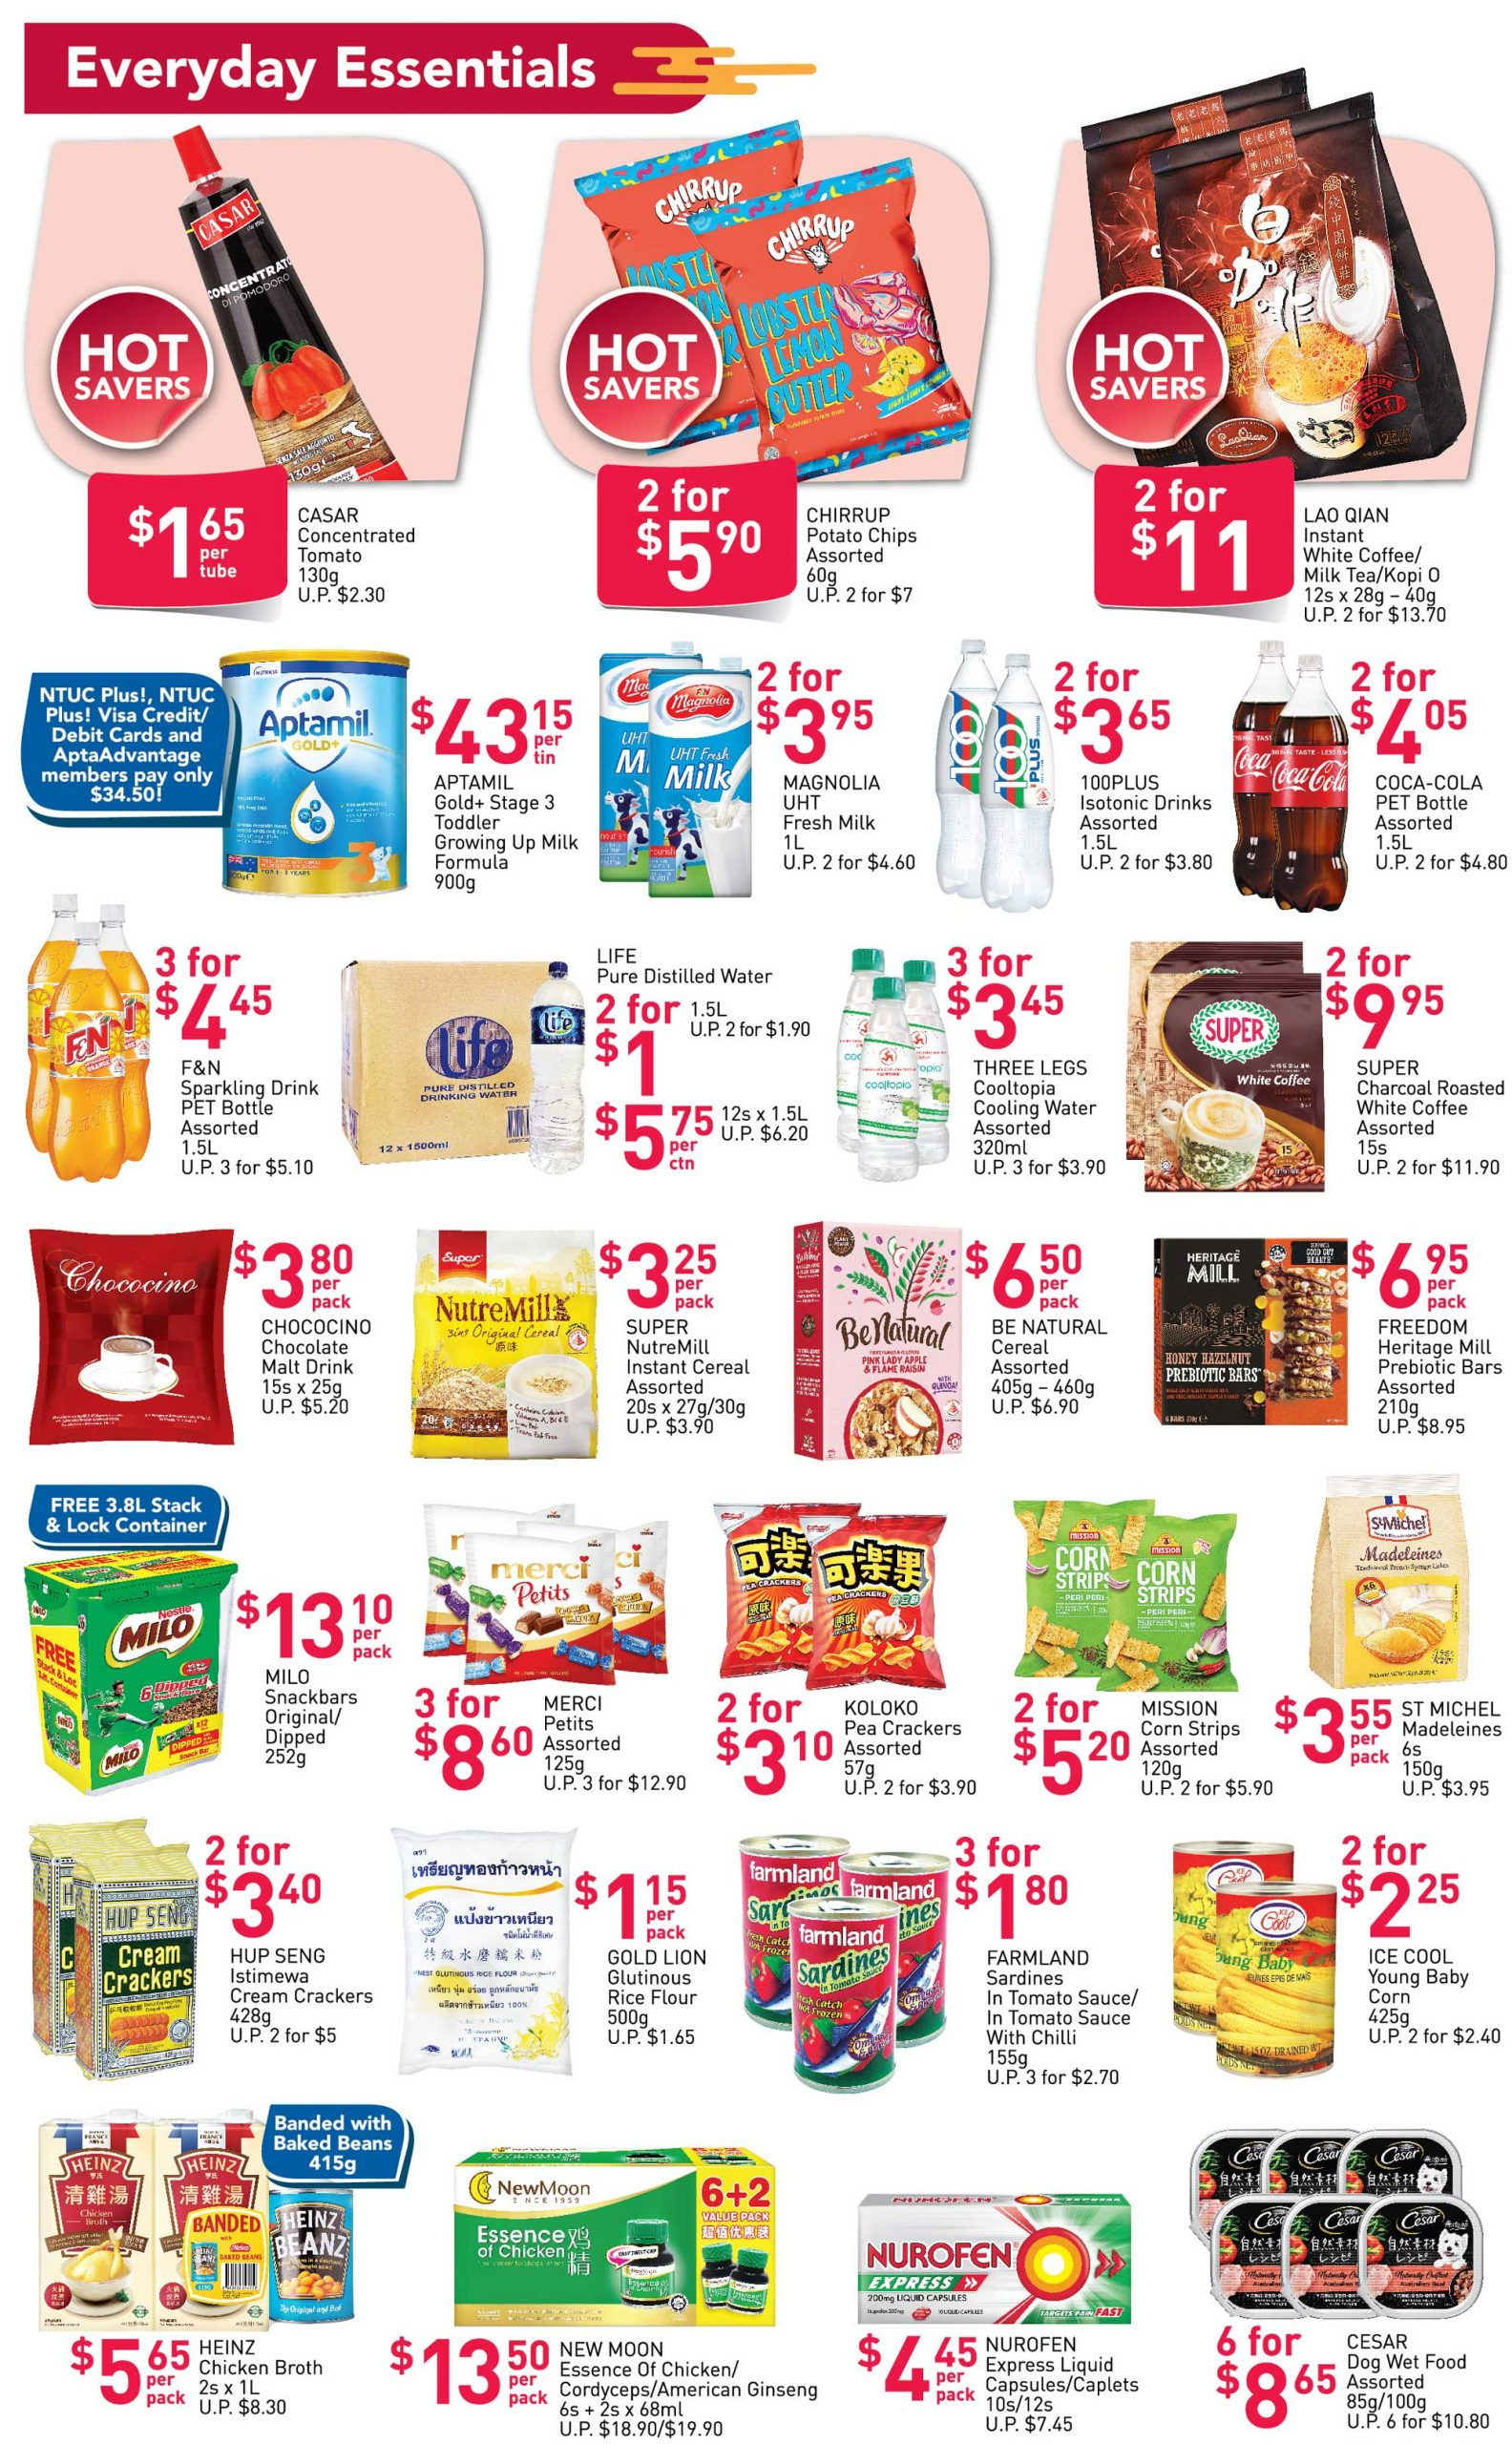 FairPrice's weekly saver deals till 3 March 2021